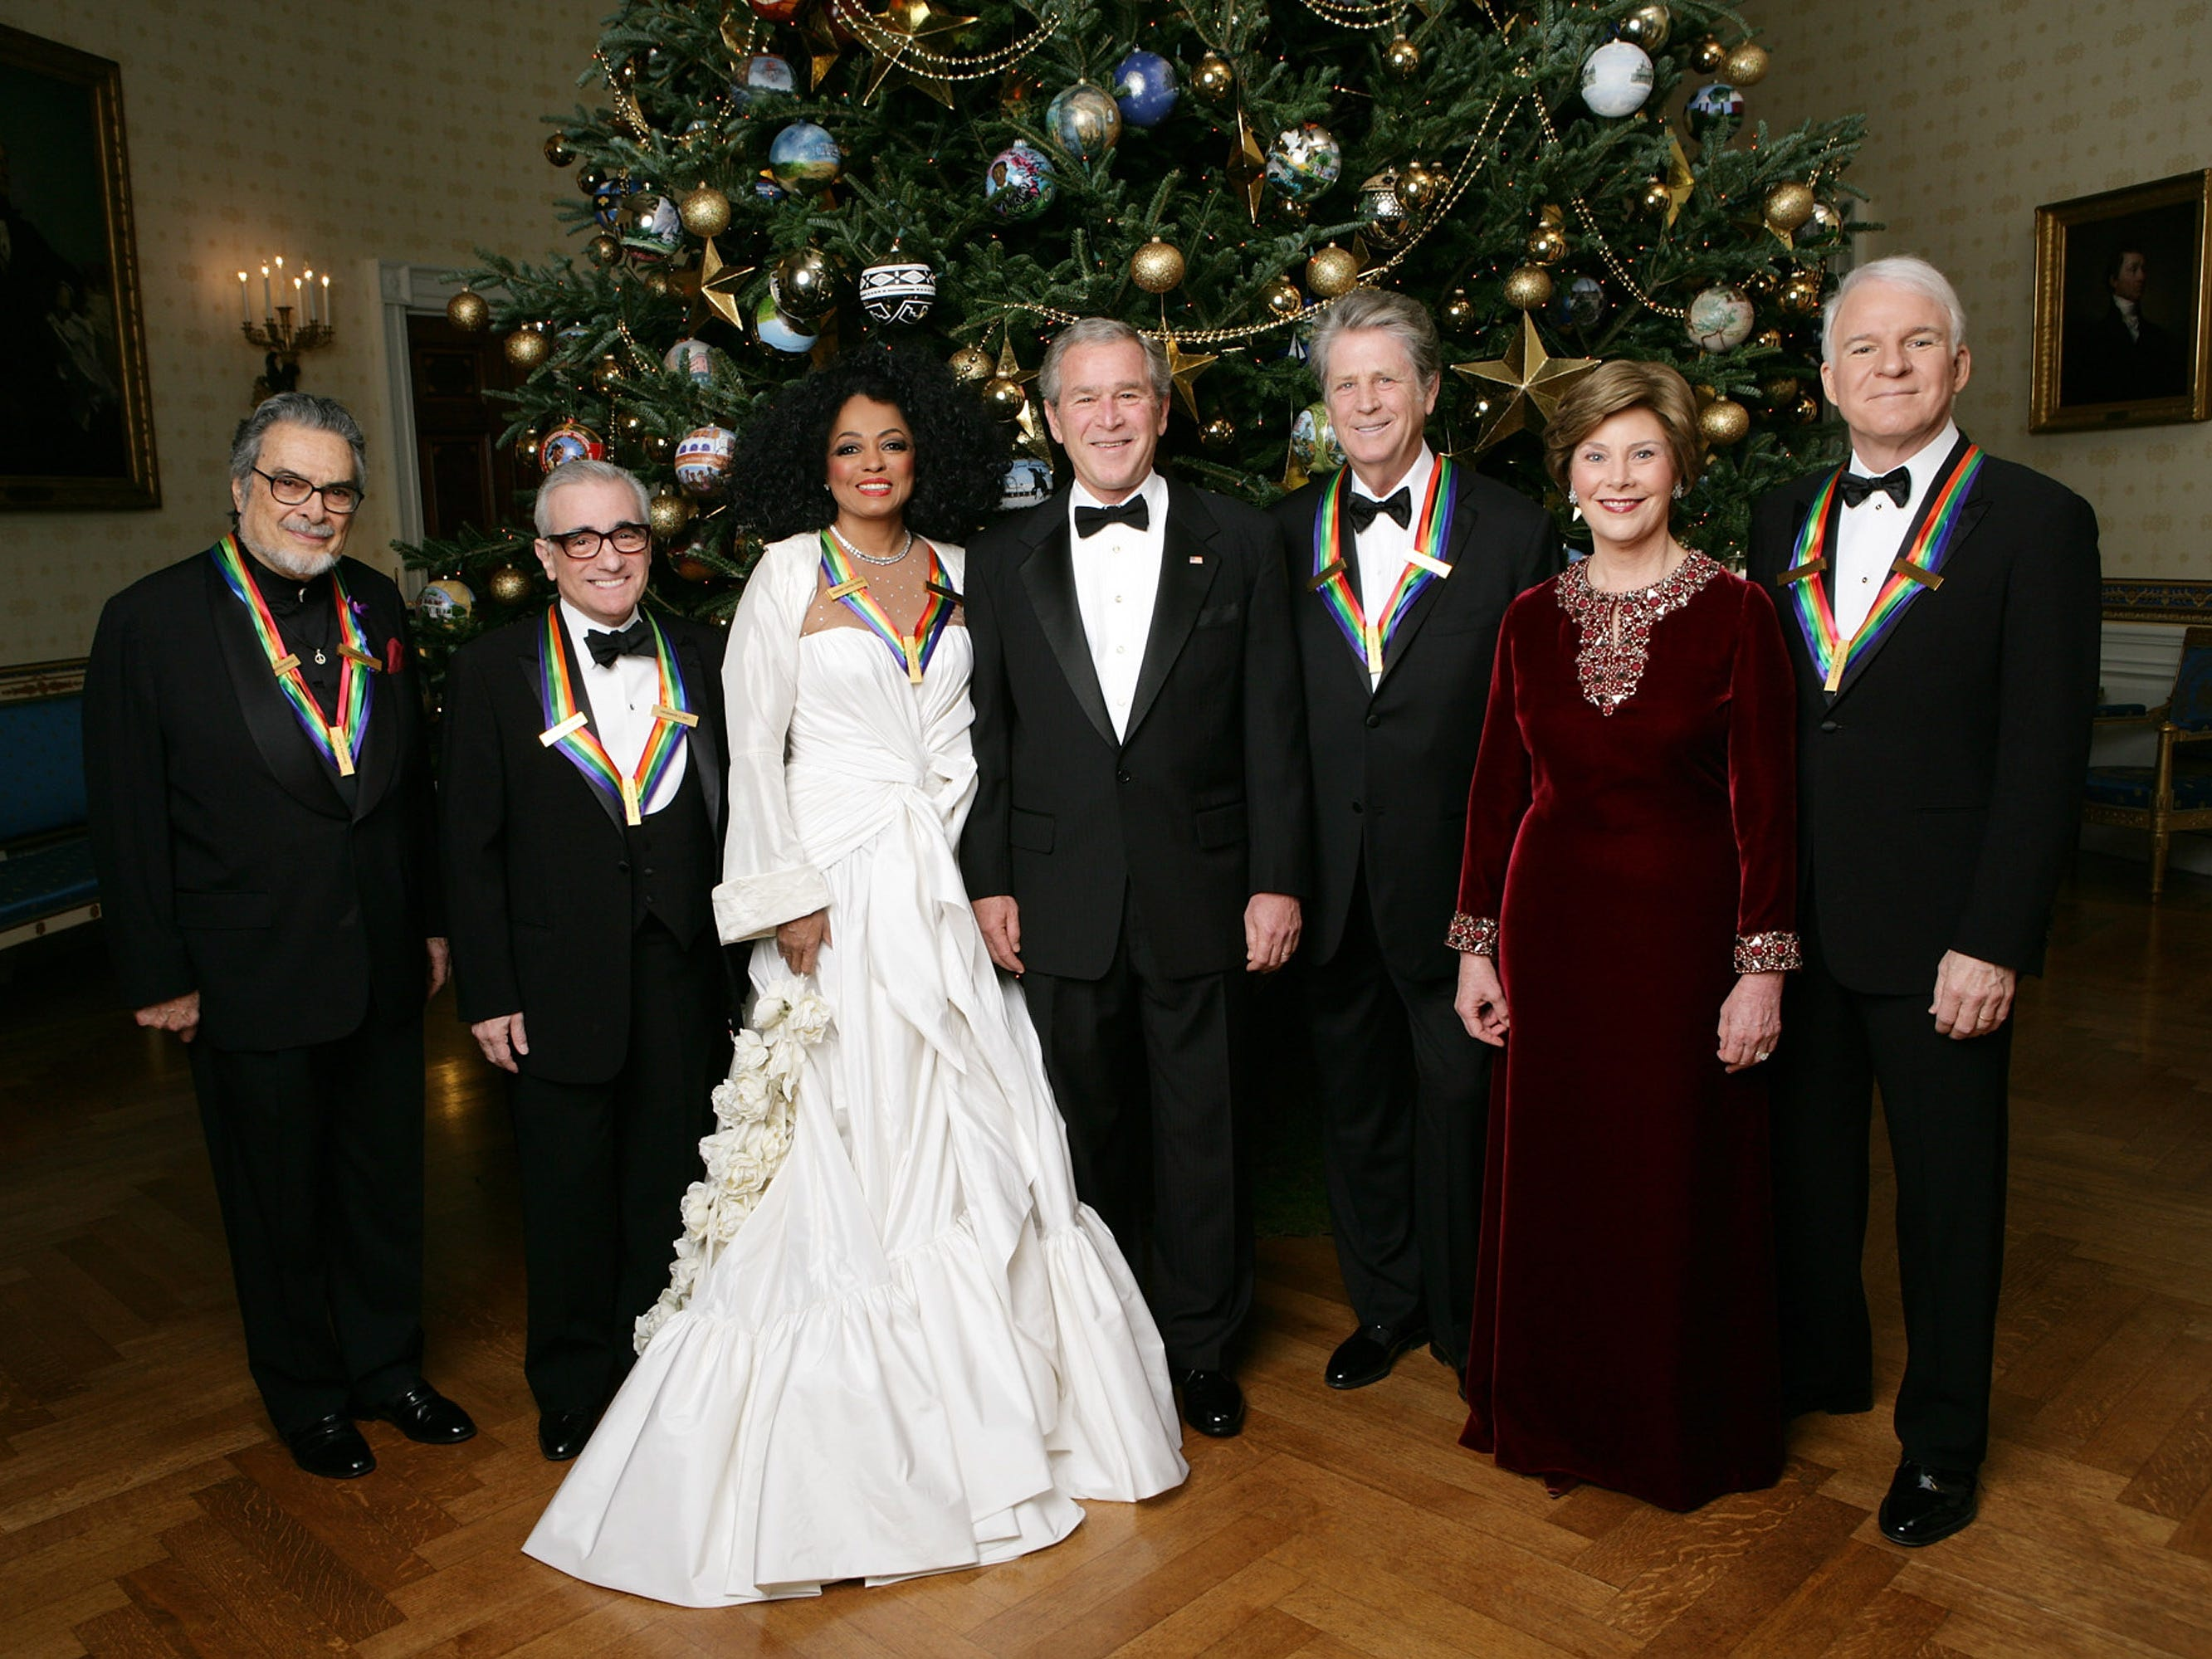 President George W. Bush and first lady Laura Bush pose in the White House with the Kennedy Center Honorees for 2007, from left:  Leon Fleisher, Martin Scorsese, Diana Ross, Brian Wilson and Steve Martin, Dec. 2, 2007.